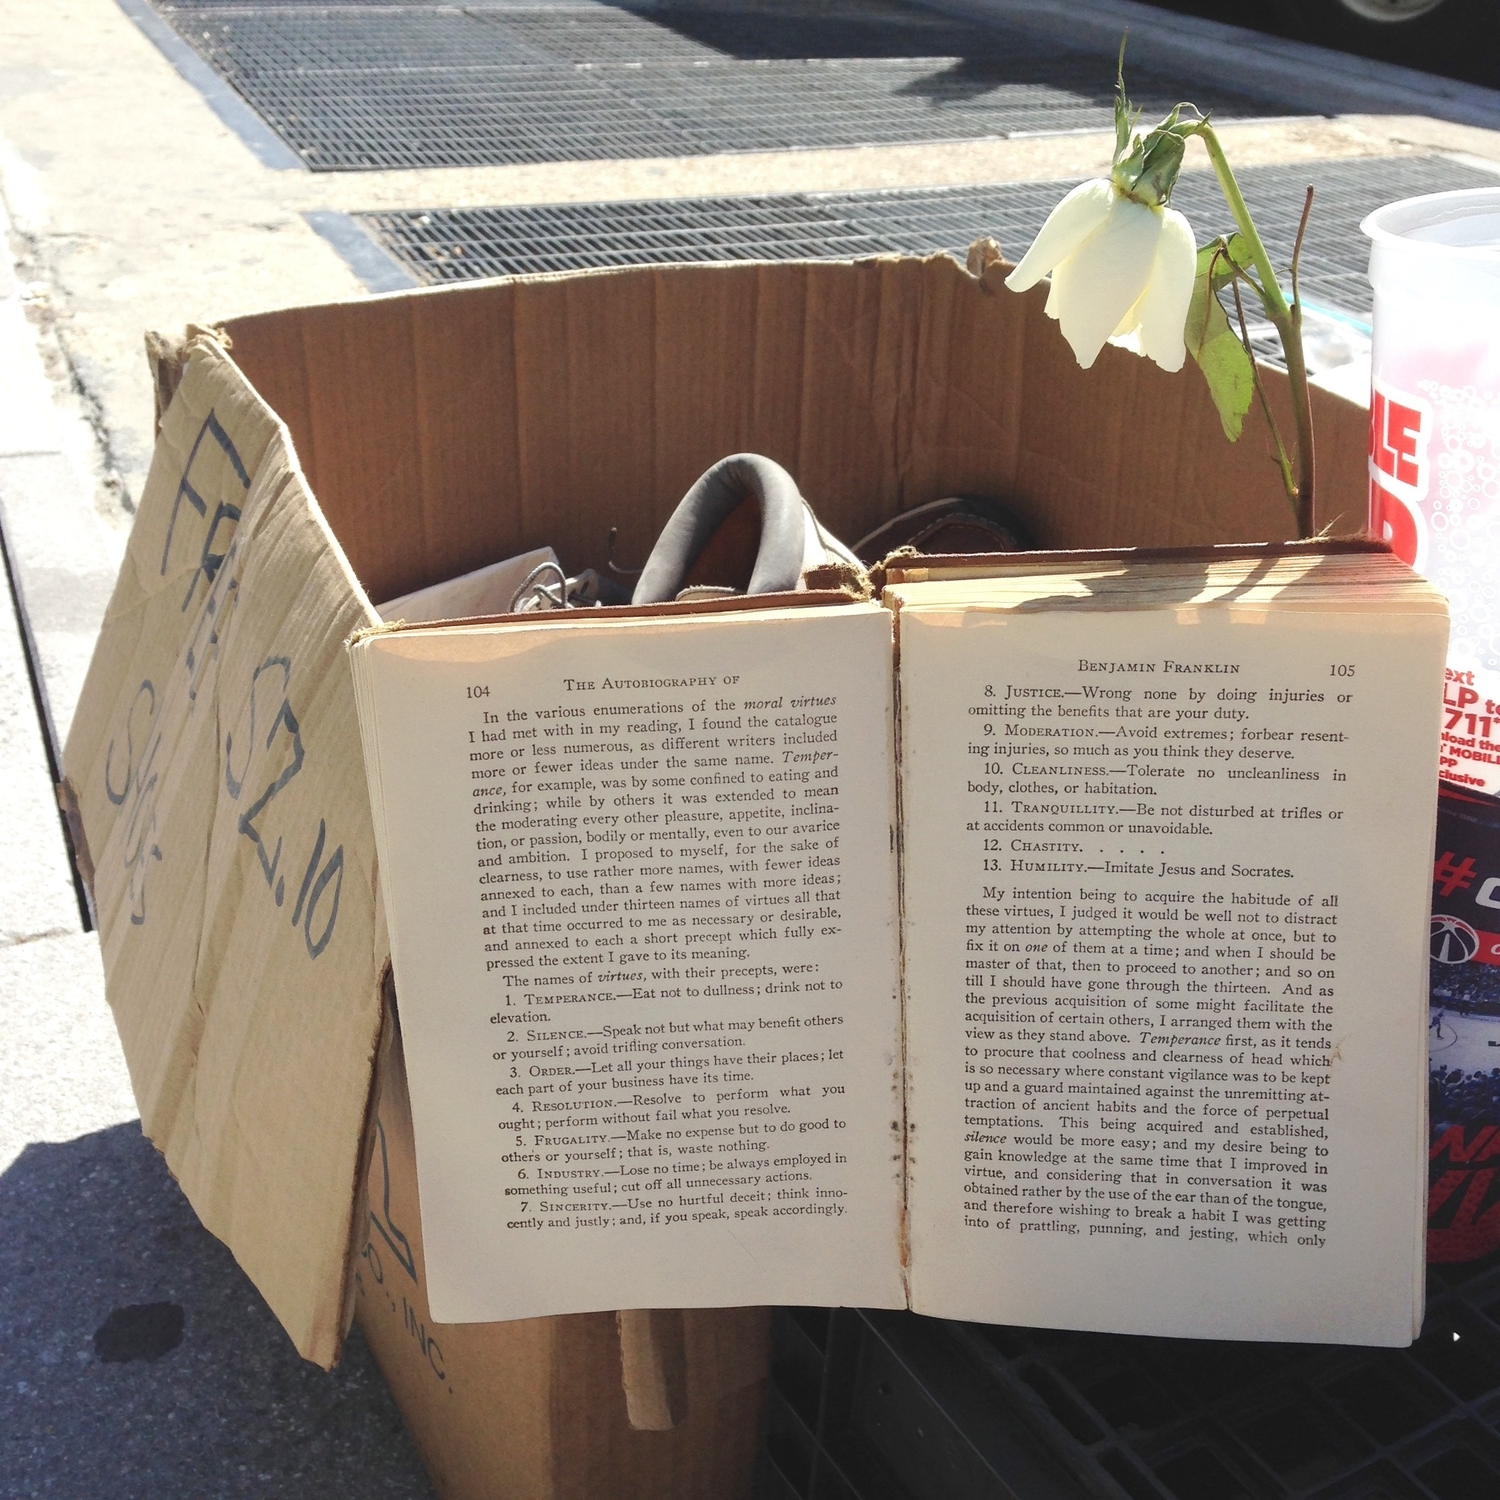 The Autobiography of Benjamin Franklin, a wilting rose, and free sz 10 shoes